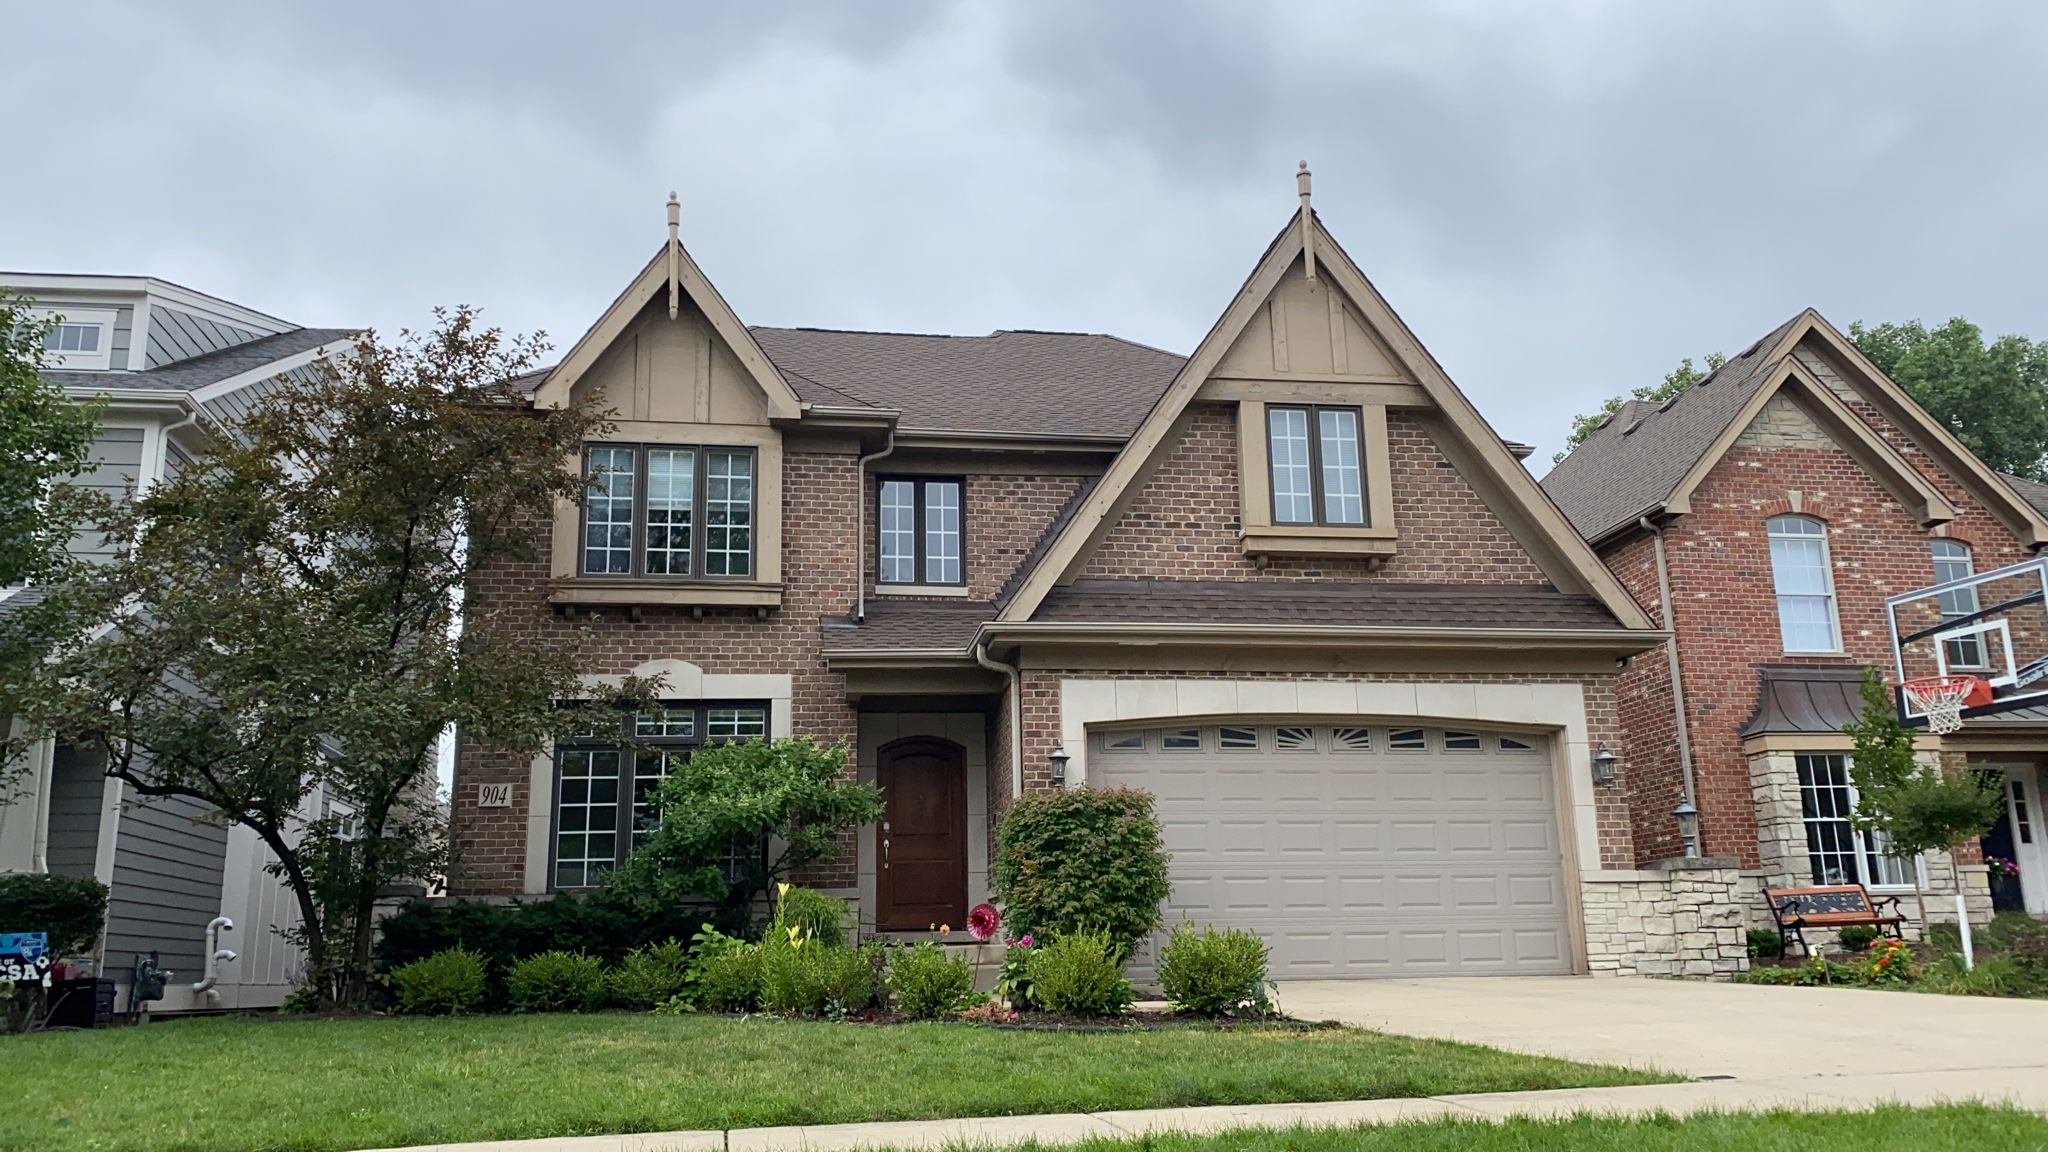 HDZ Barkwood roof by Feze Roofing Inc. in Elmhurst, IL